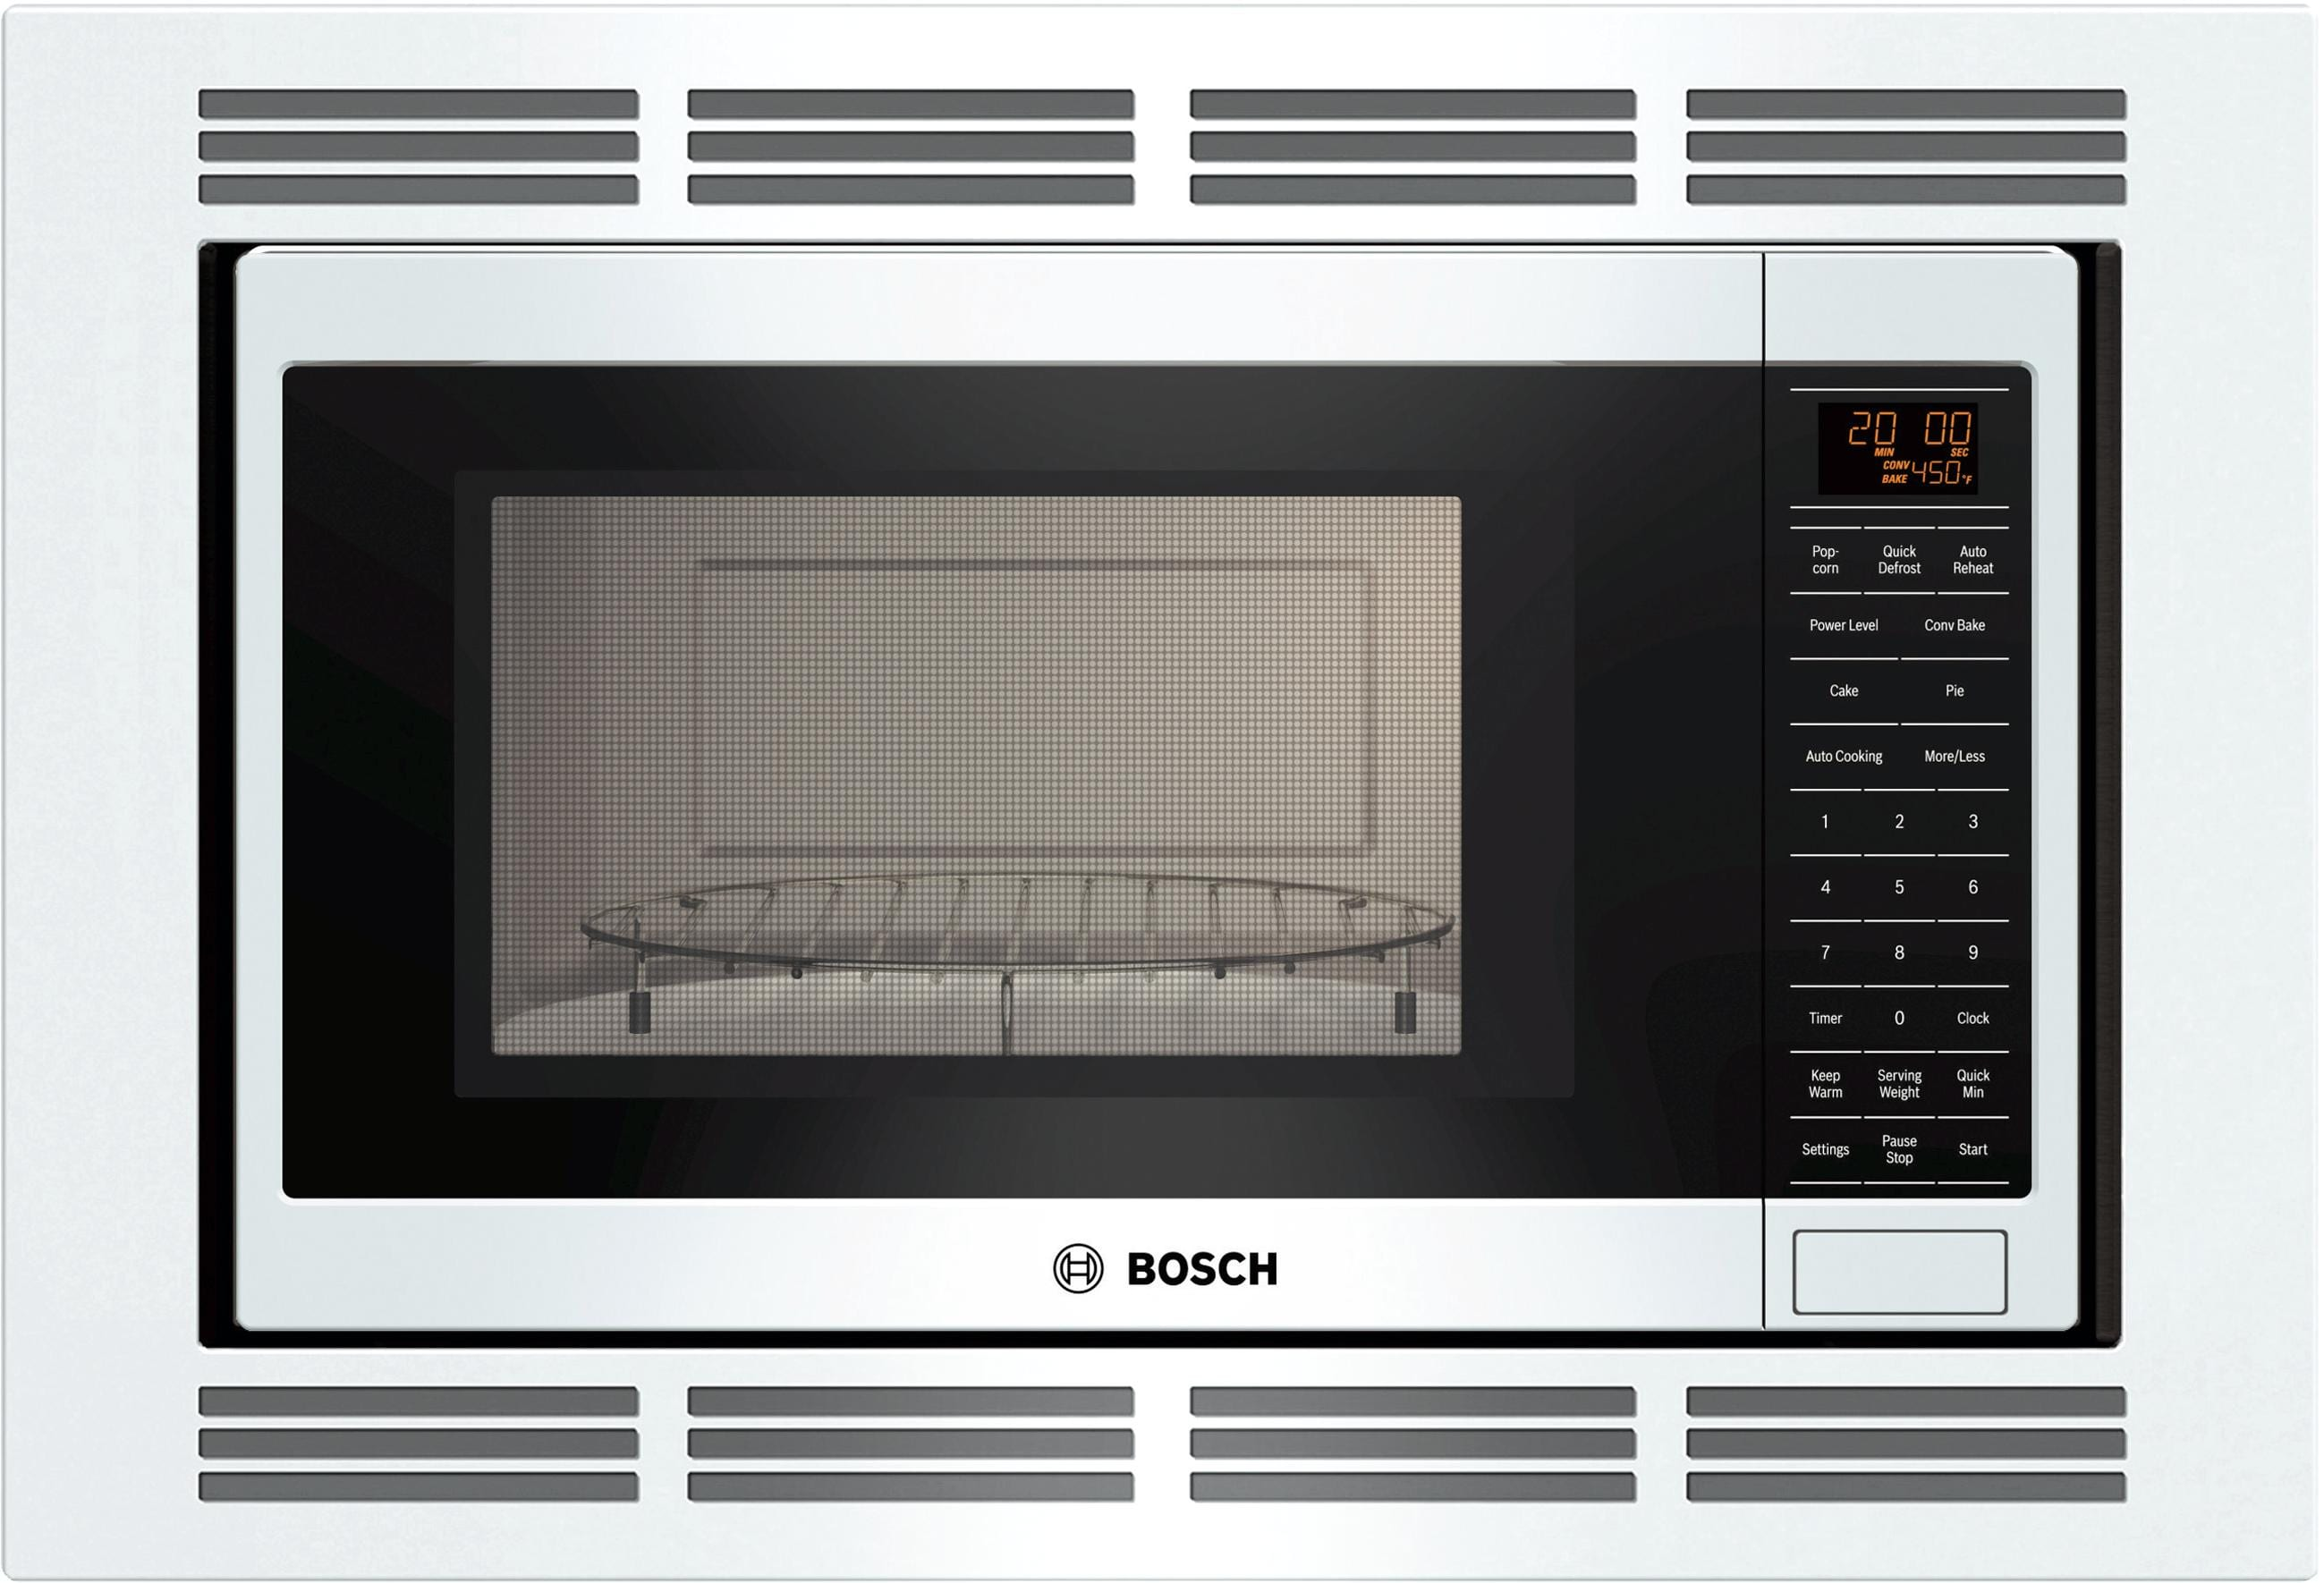 Bosch Microwave Built In Convection Microwave 800 Series White